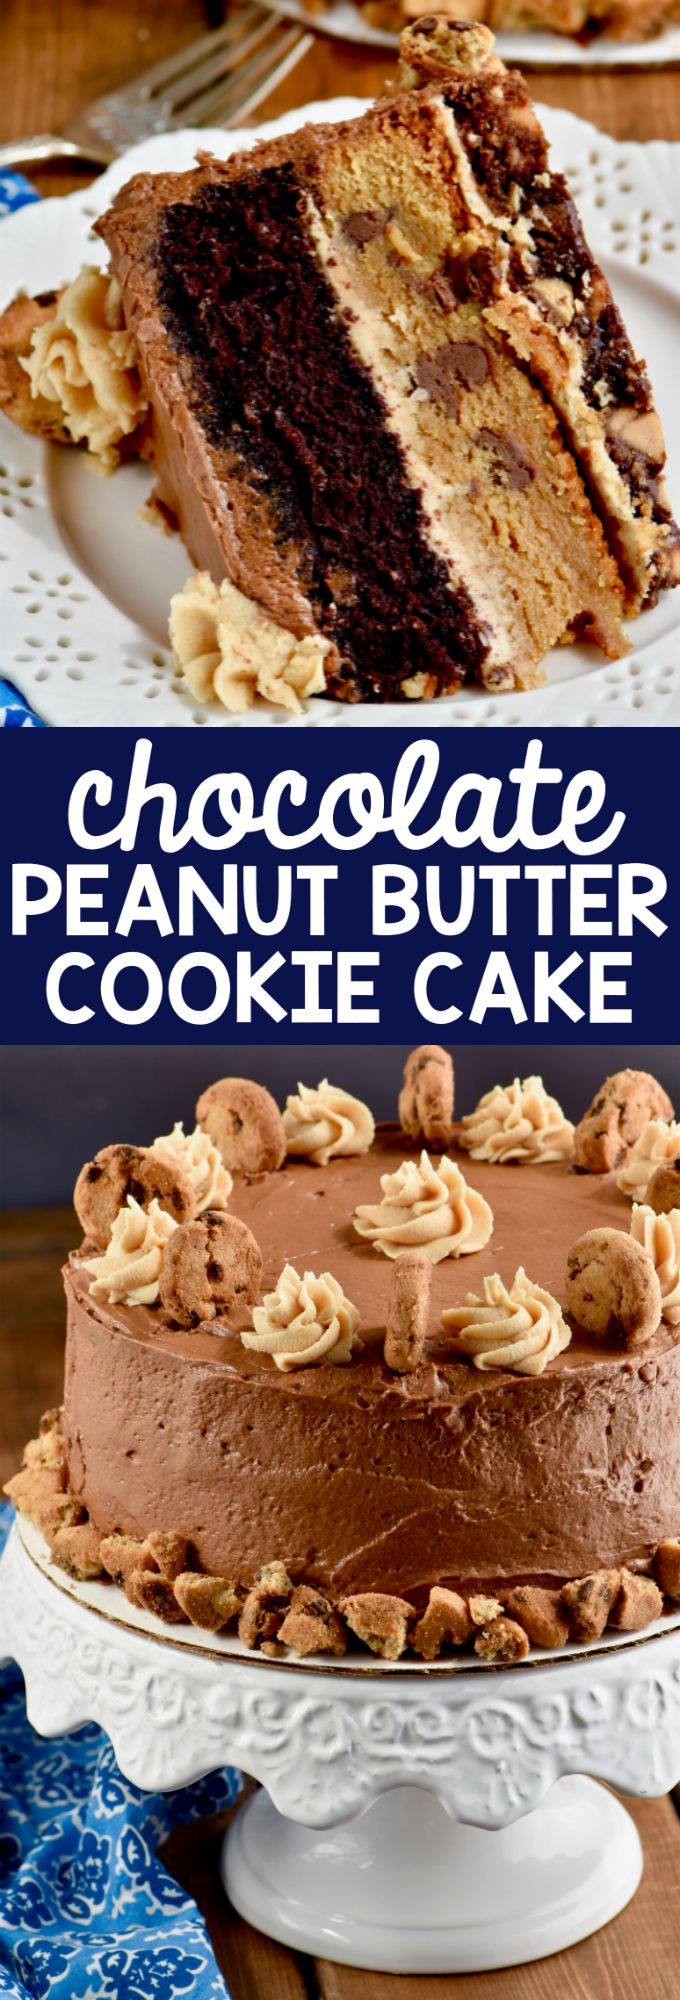 Utterly decadent Chocolate Peanut Butter Cookie Cake